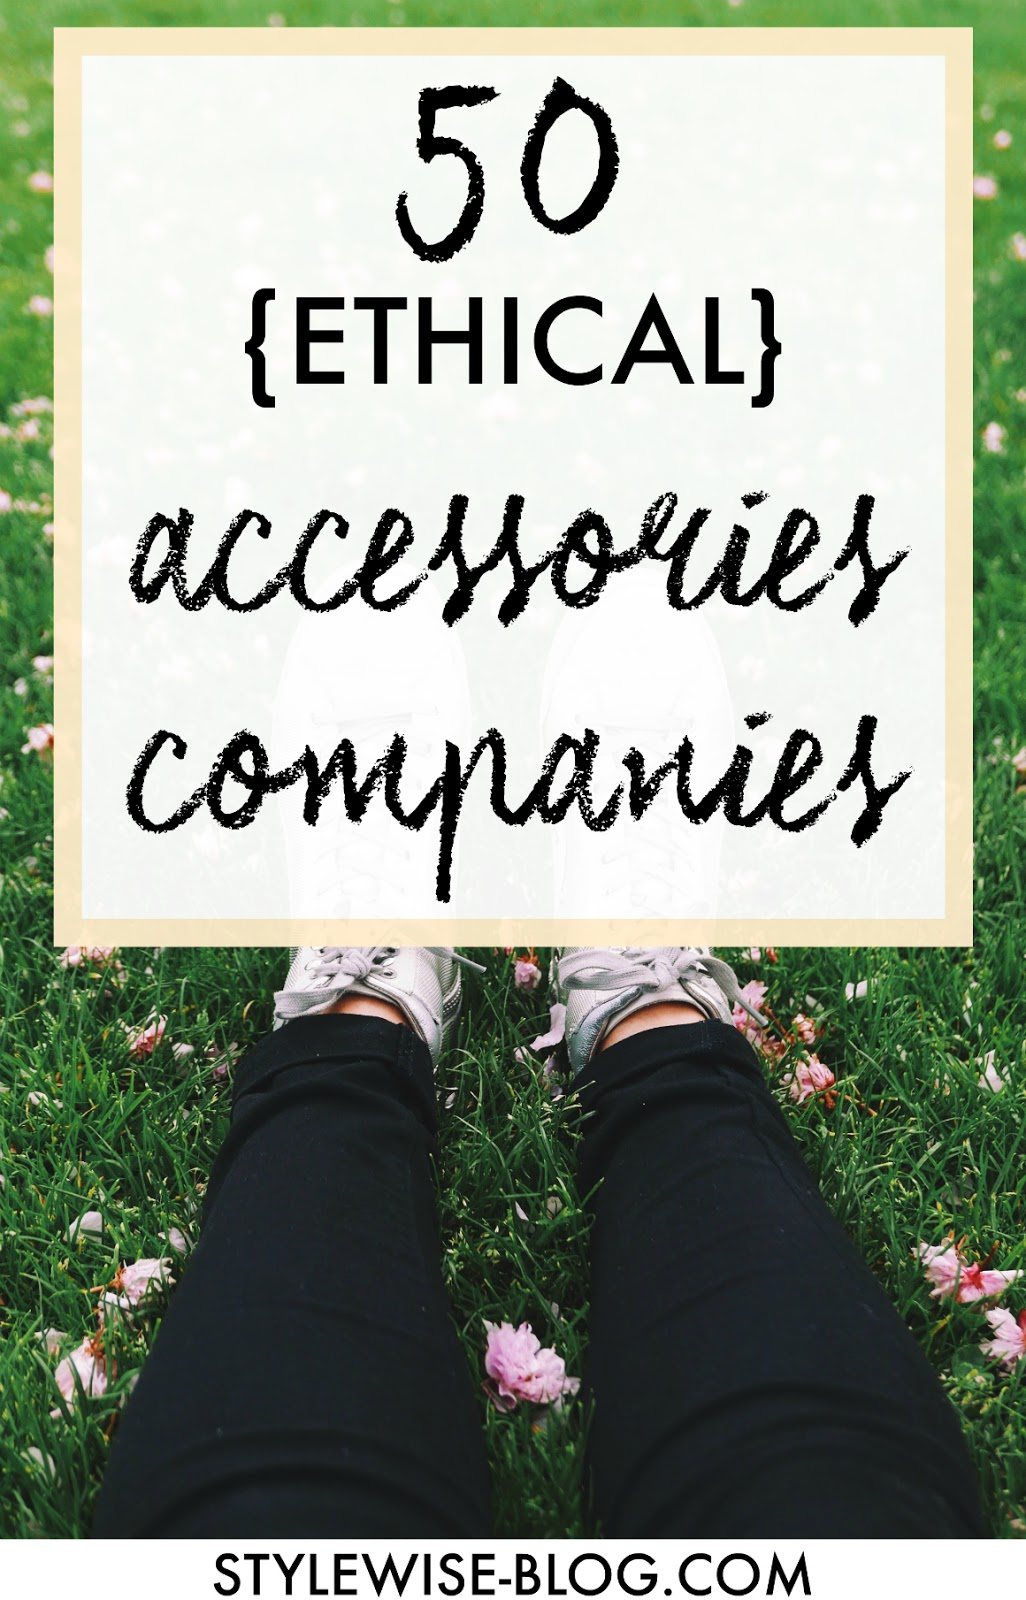 more than 50 ethical and sustainable shoes and accessories directory